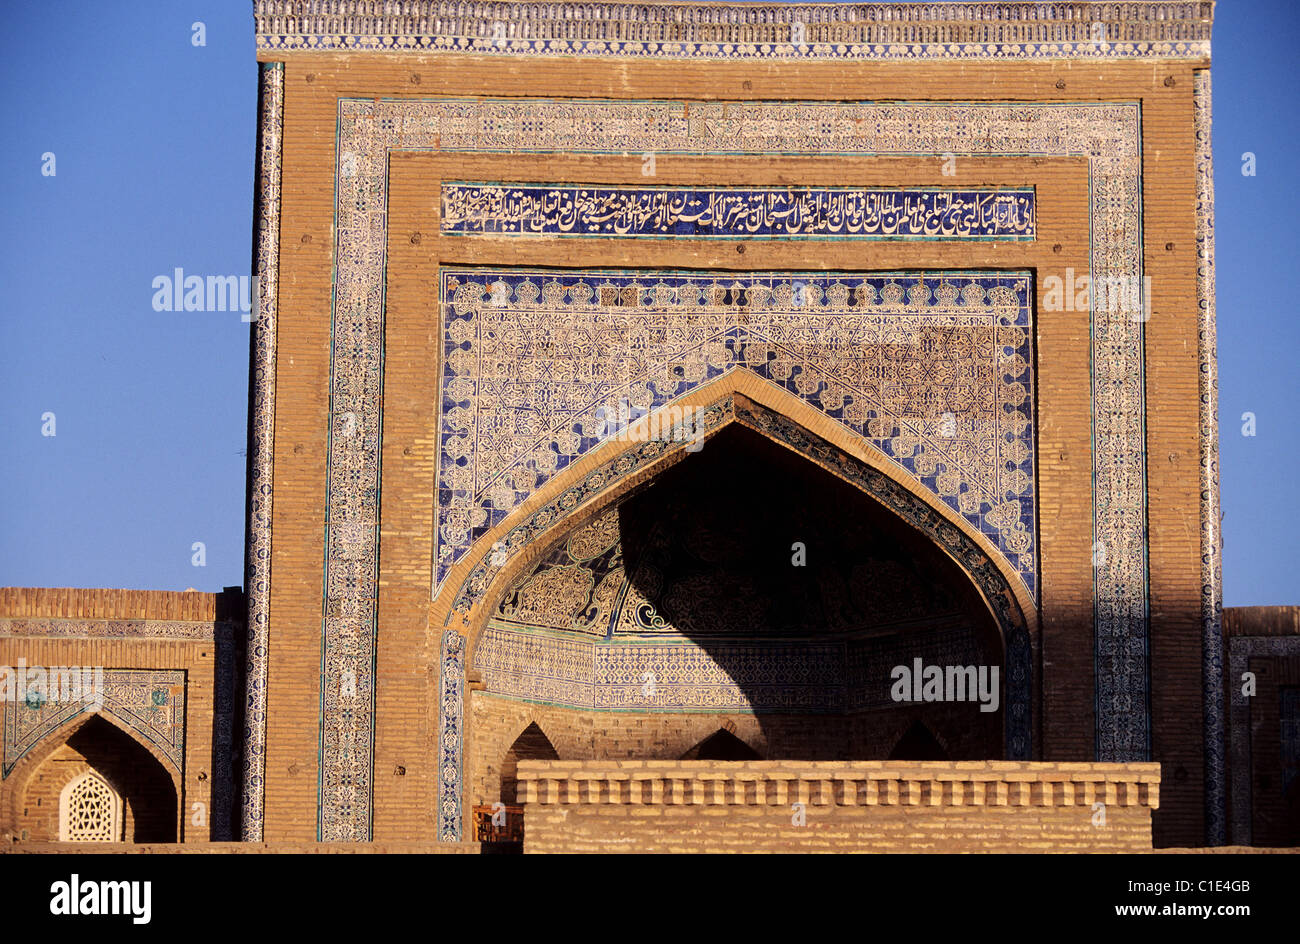 Uzbekistan, Khiva, Monumental door richly adorned with ceramics illustrating verses of the Coran - Stock Image